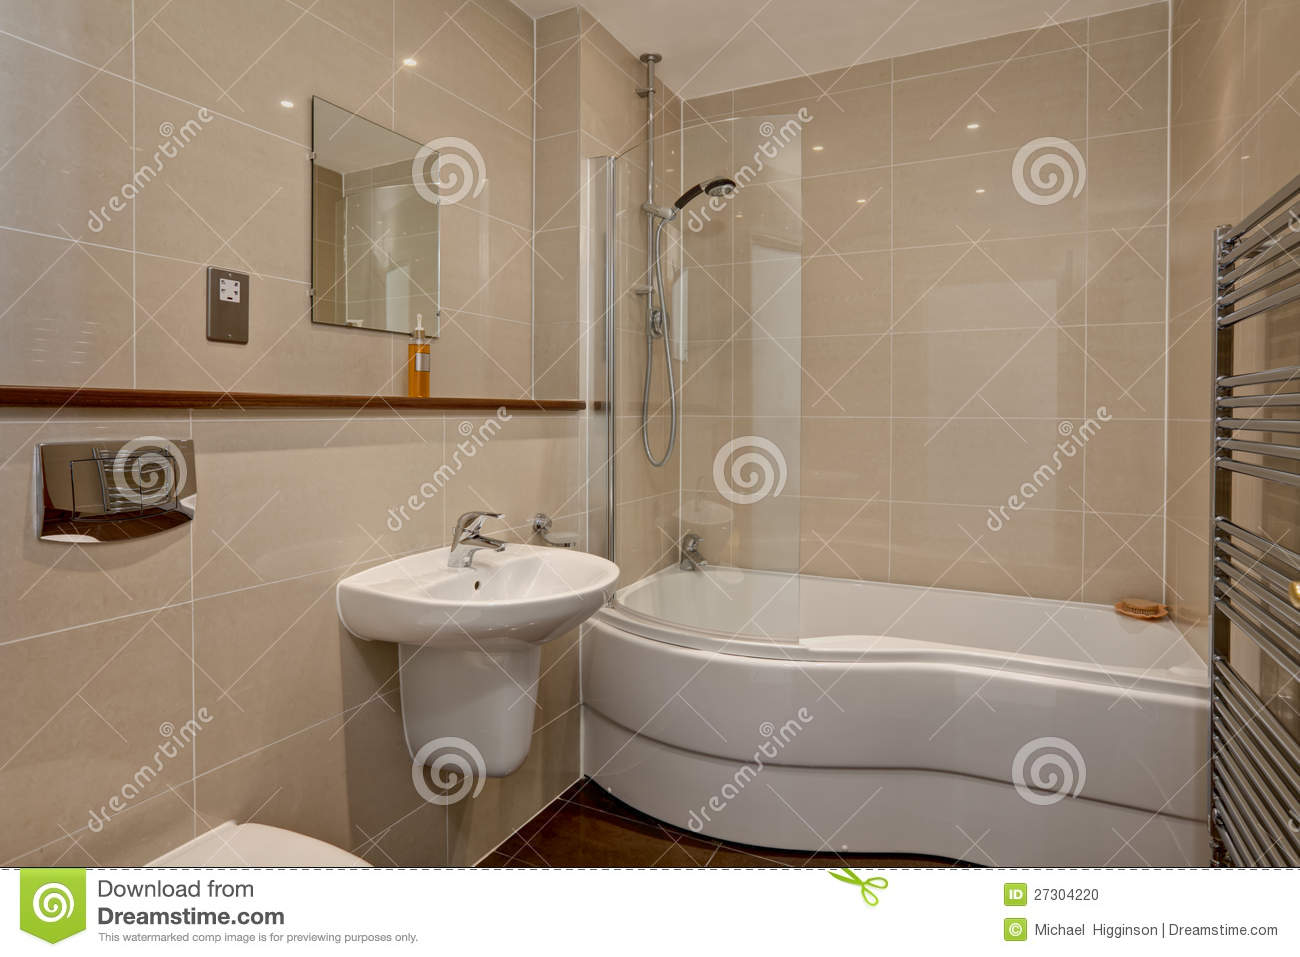 Modern luxury tiled bathroom stock photo image 27304220 for Salle de bain de luxe moderne